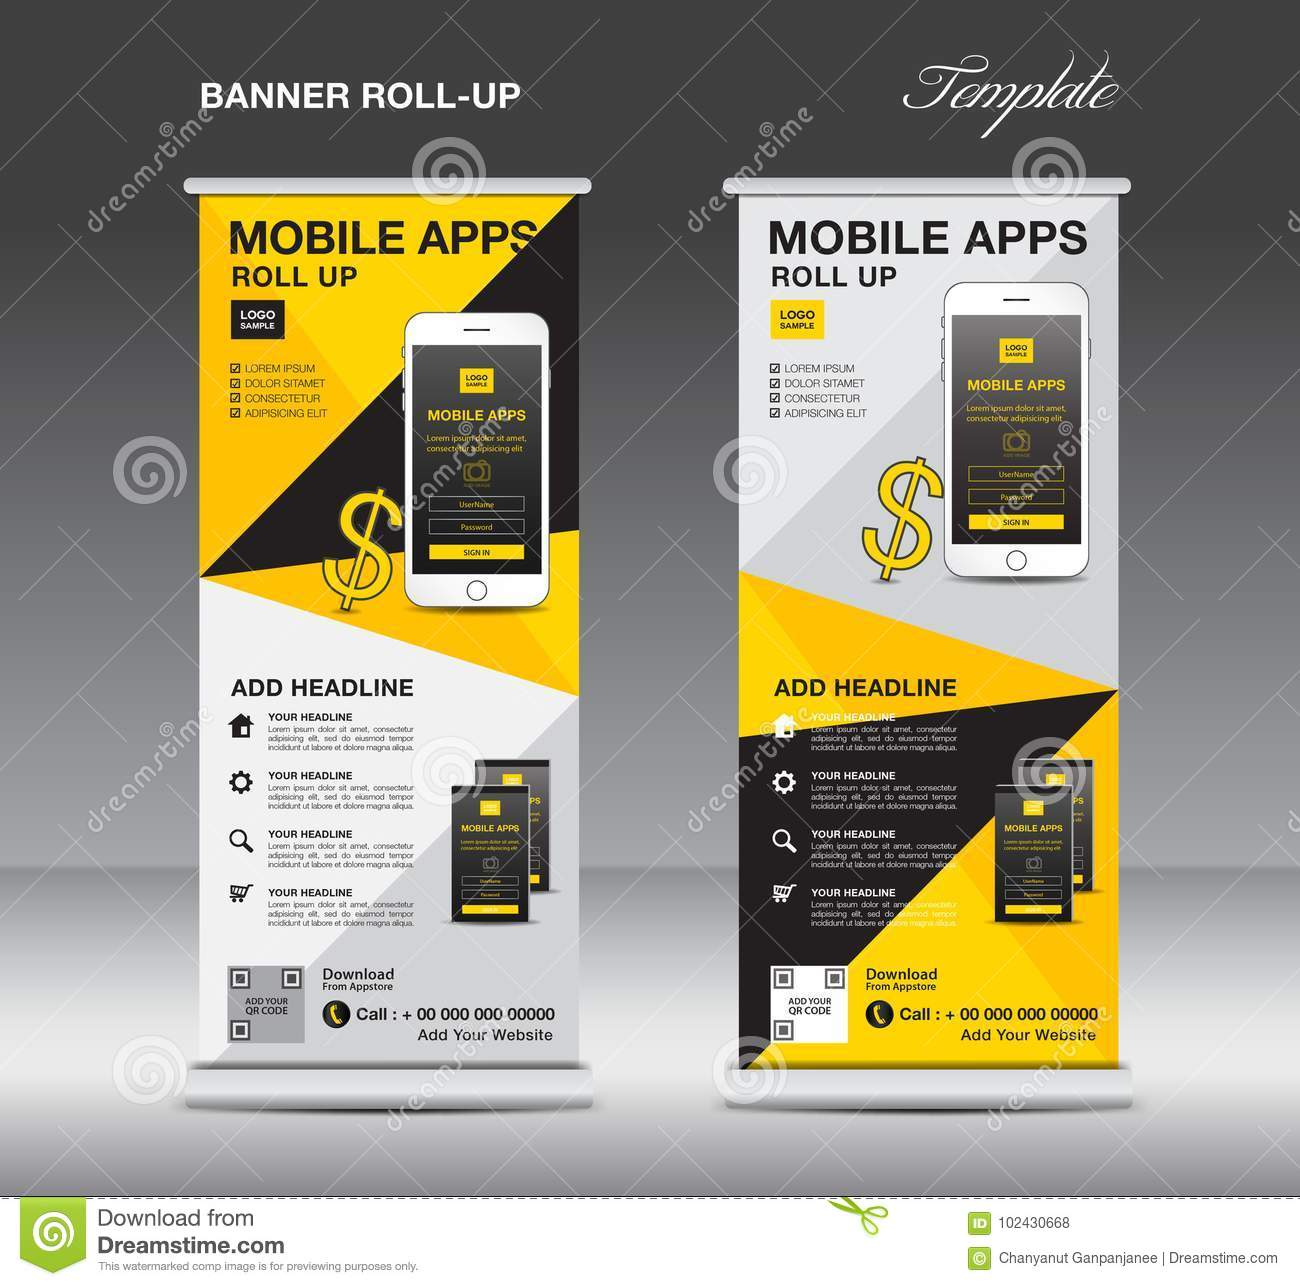 MOBILE APPS Roll up banner template, stand layout, yellow banner